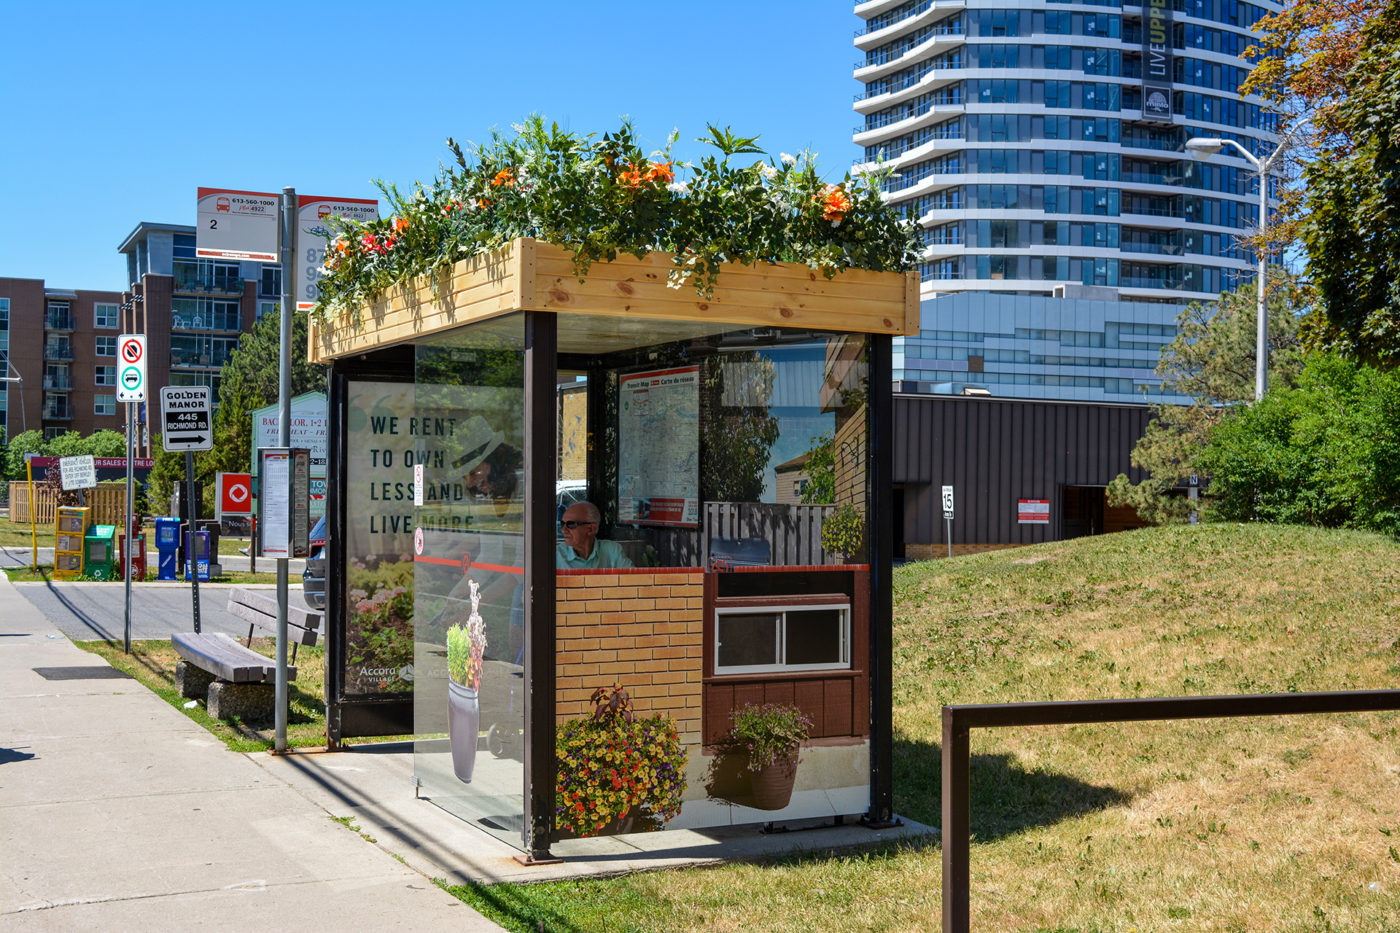 Accora Village - Street Furniture - Decorative Transit Shelter (Ottawa, Ontario)